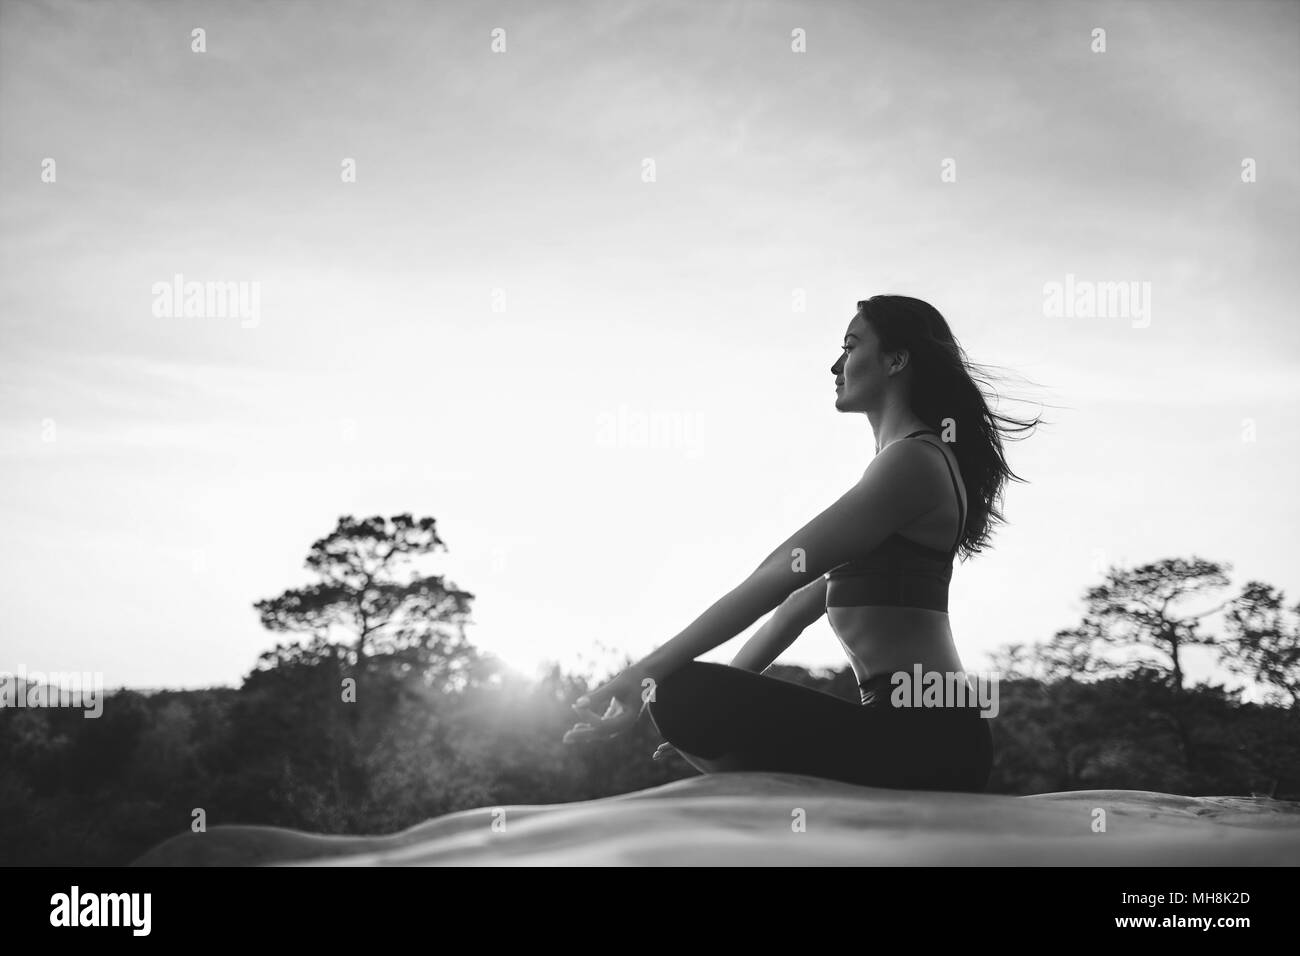 Young woman practicing yoga outdoors - Stock Image